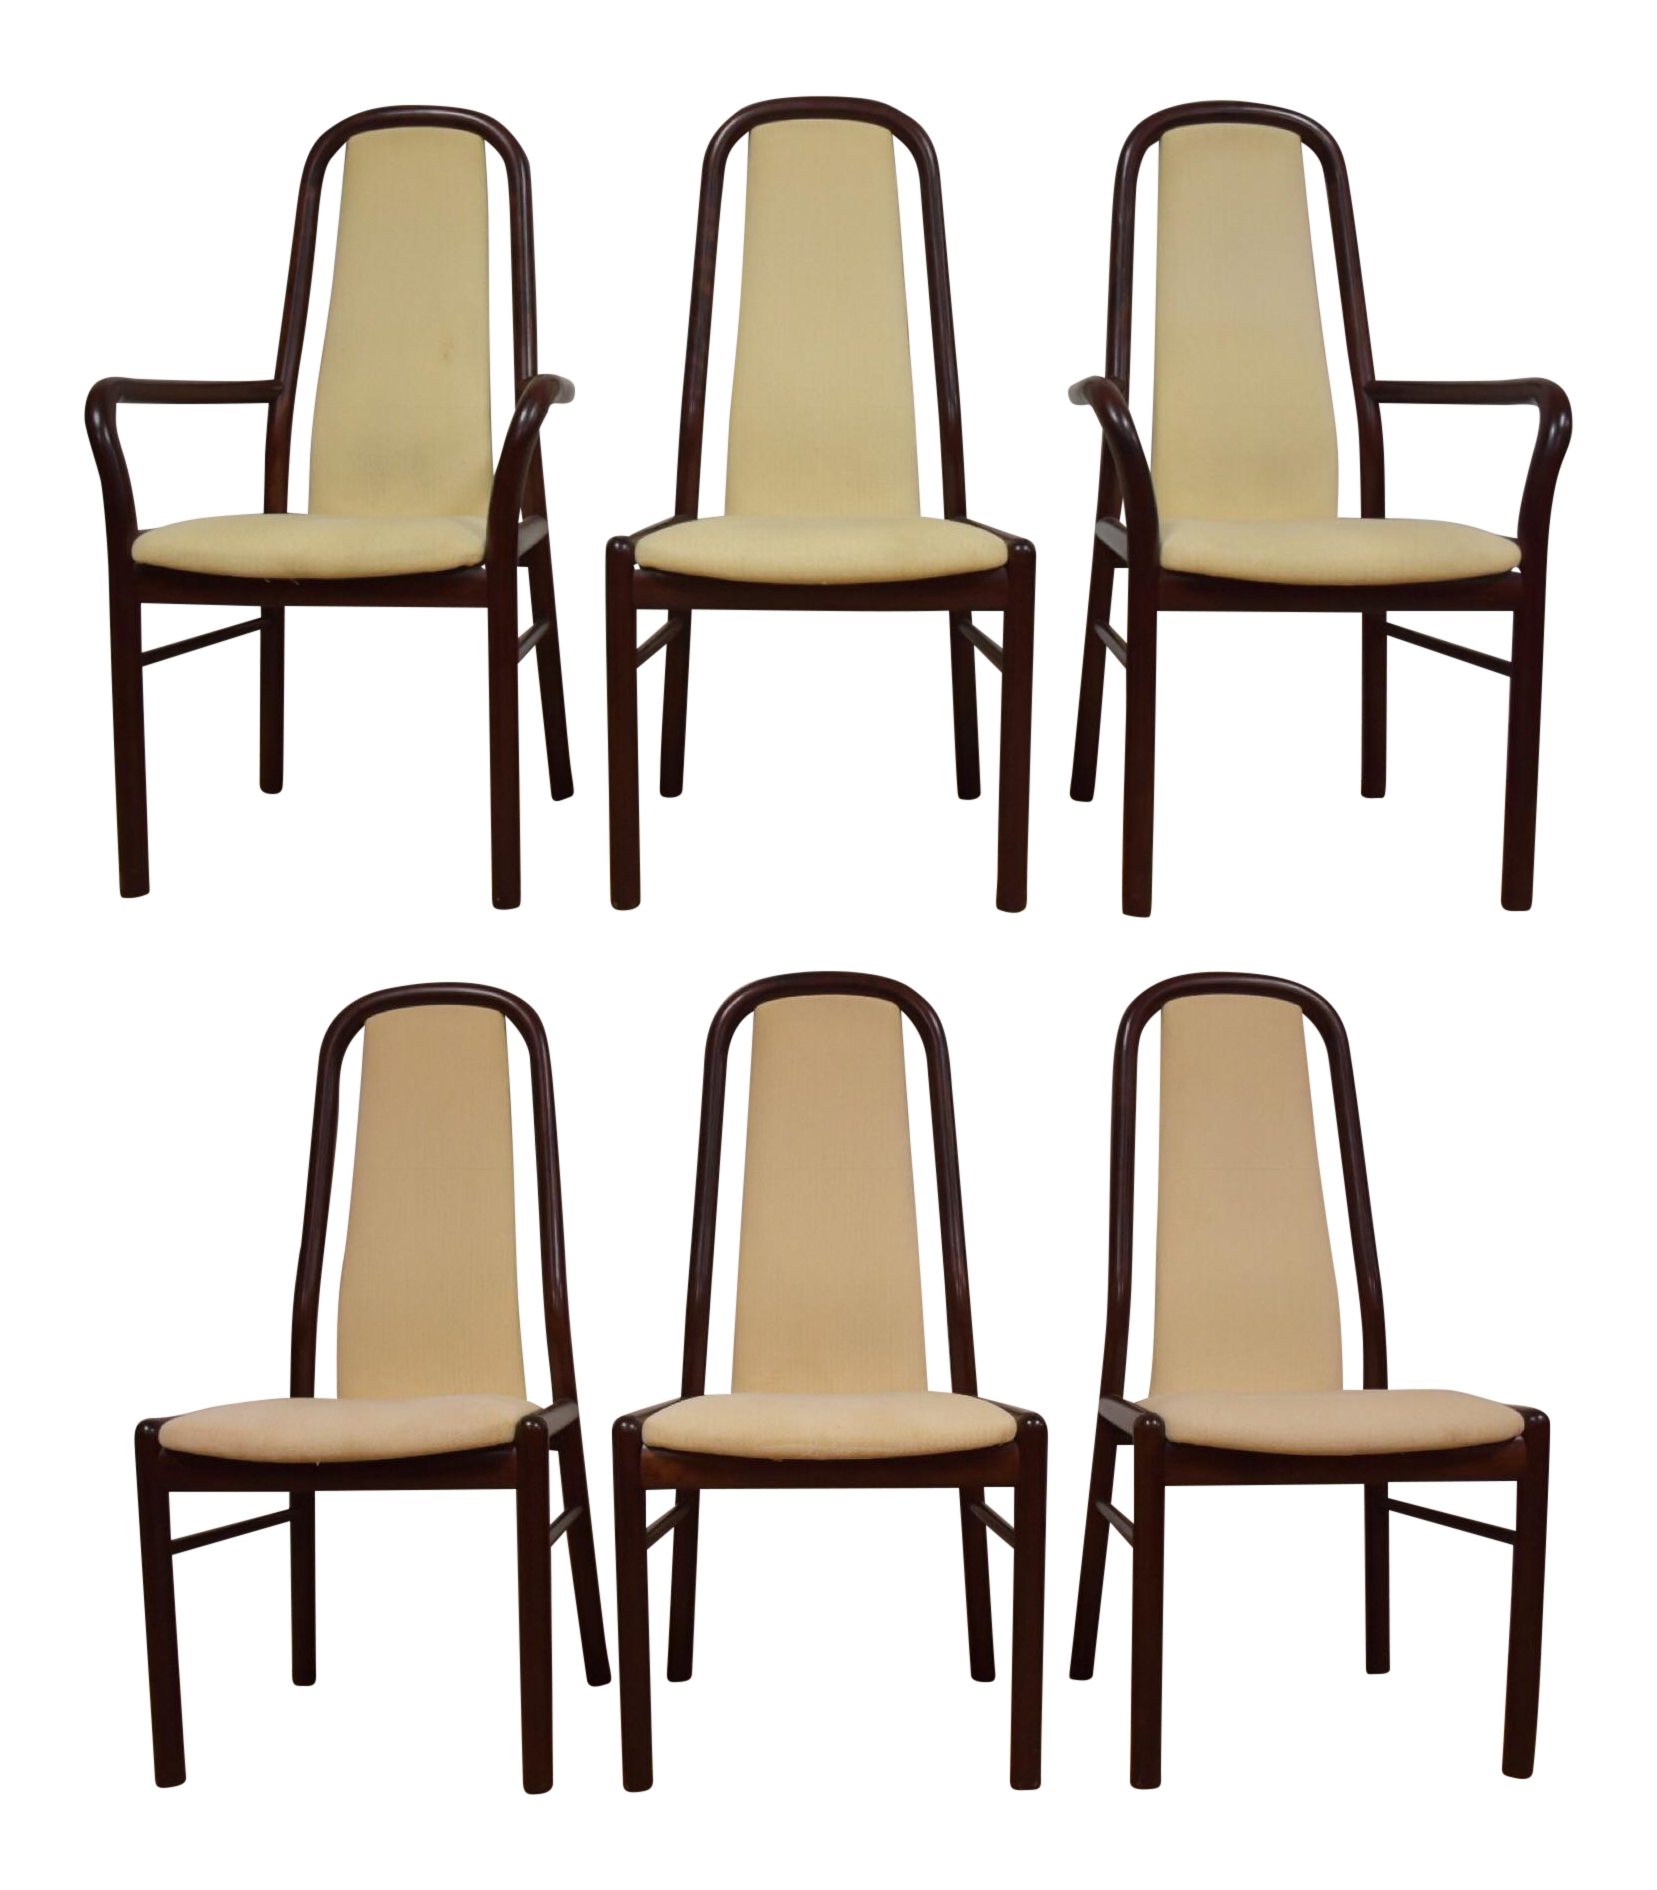 Boltinge danish modern dining. Furniture clipart soft chair